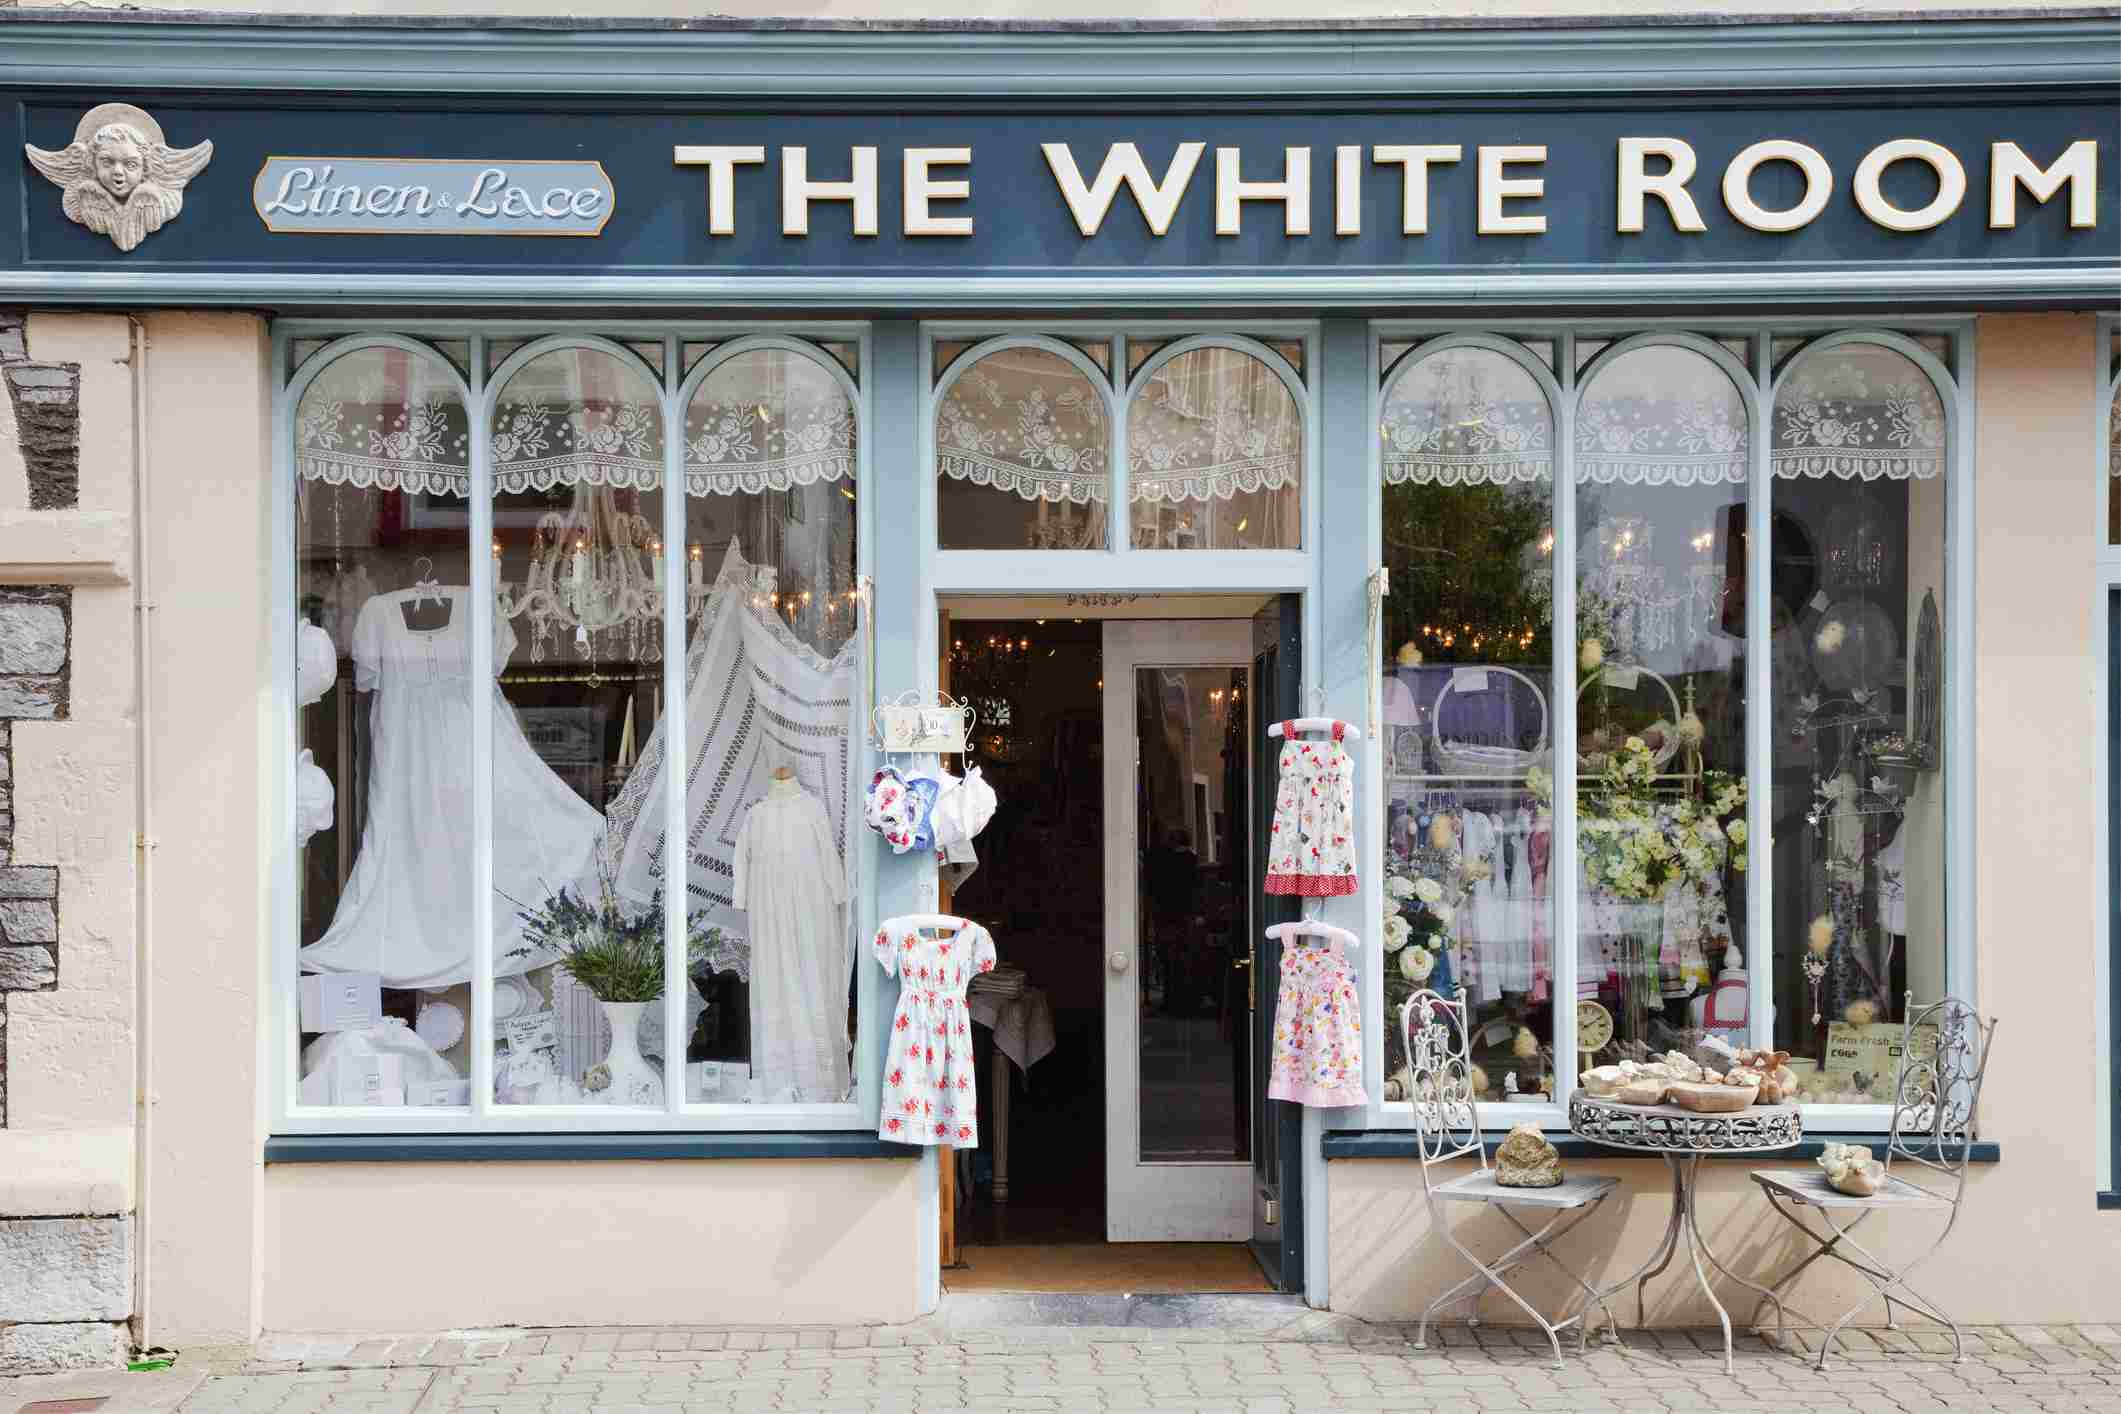 The White Room On Henry Street in Kenmare County Kerry Ireland